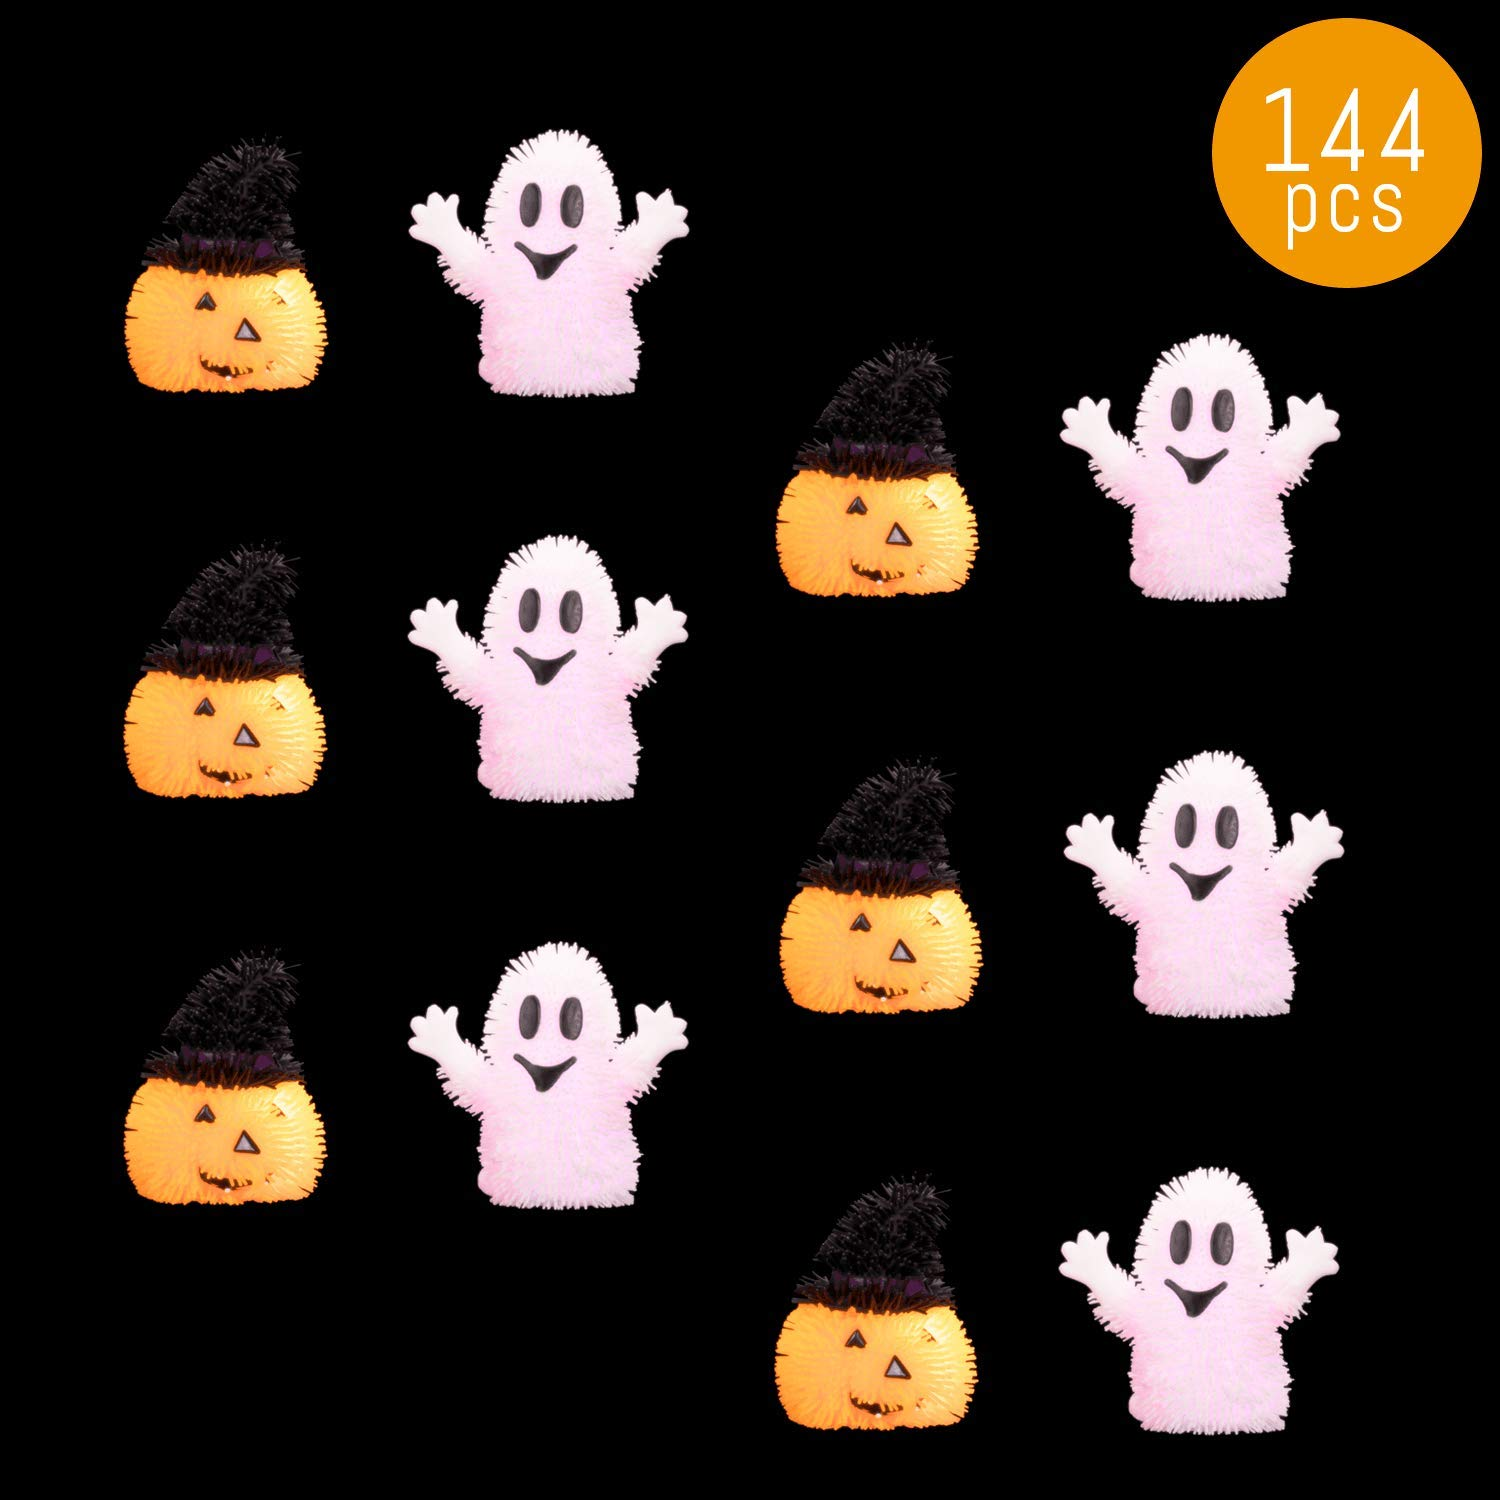 Lumistick LED Light Up Happy Halloween Puffer Toys - These Adorable and Squeezy Toys are Meant for Both Kids and Adults! (Assorted, 144 Puffer Toys)